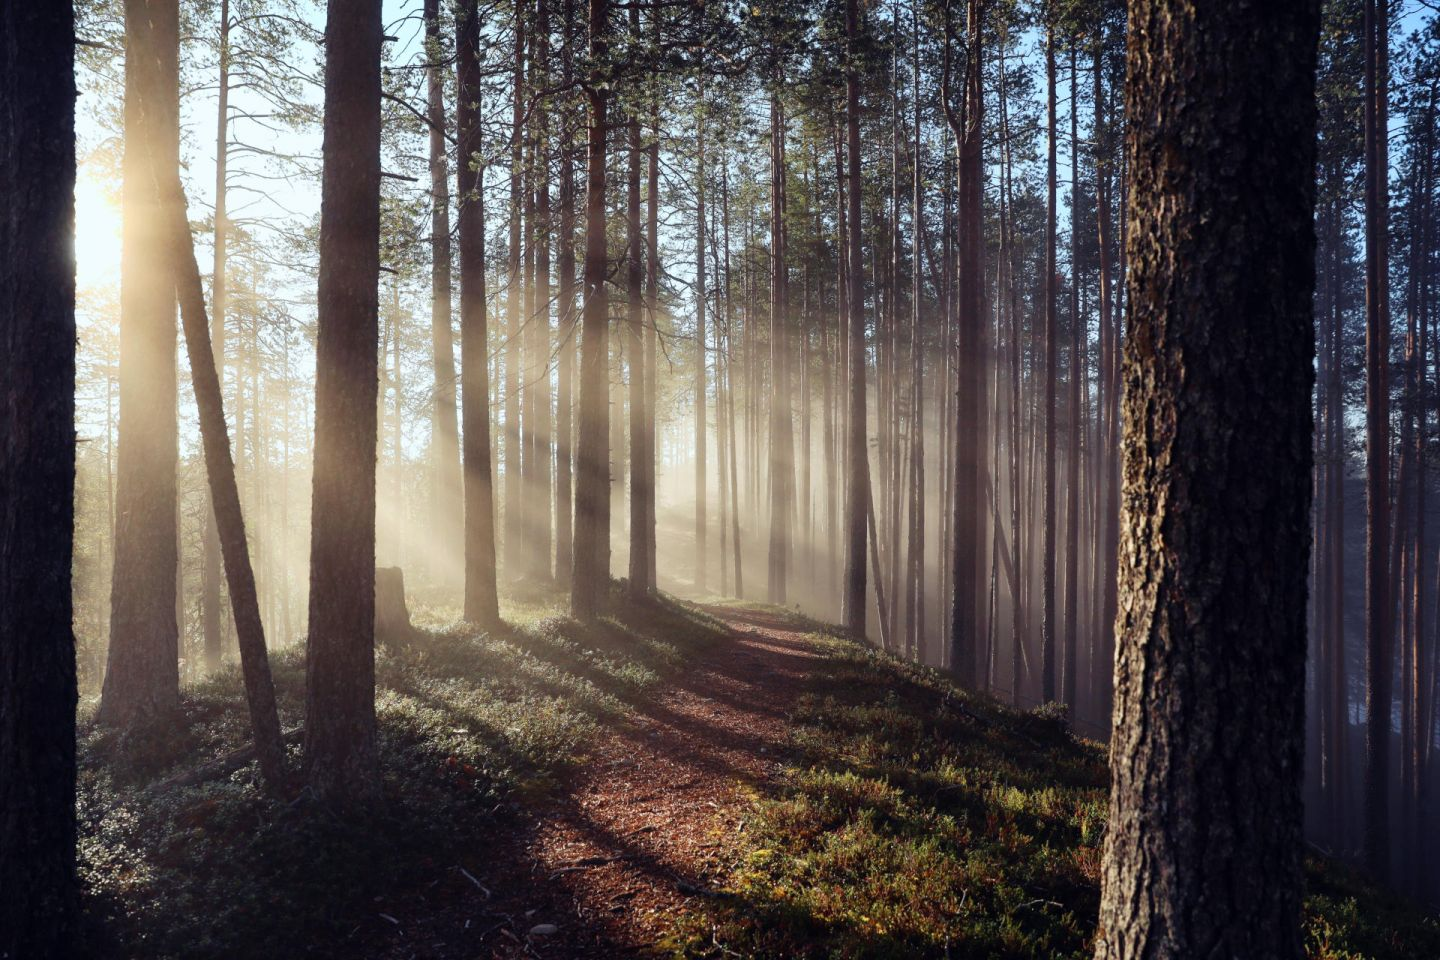 Beams of sunlight in the forests of Lapland, Europe's last wilderness